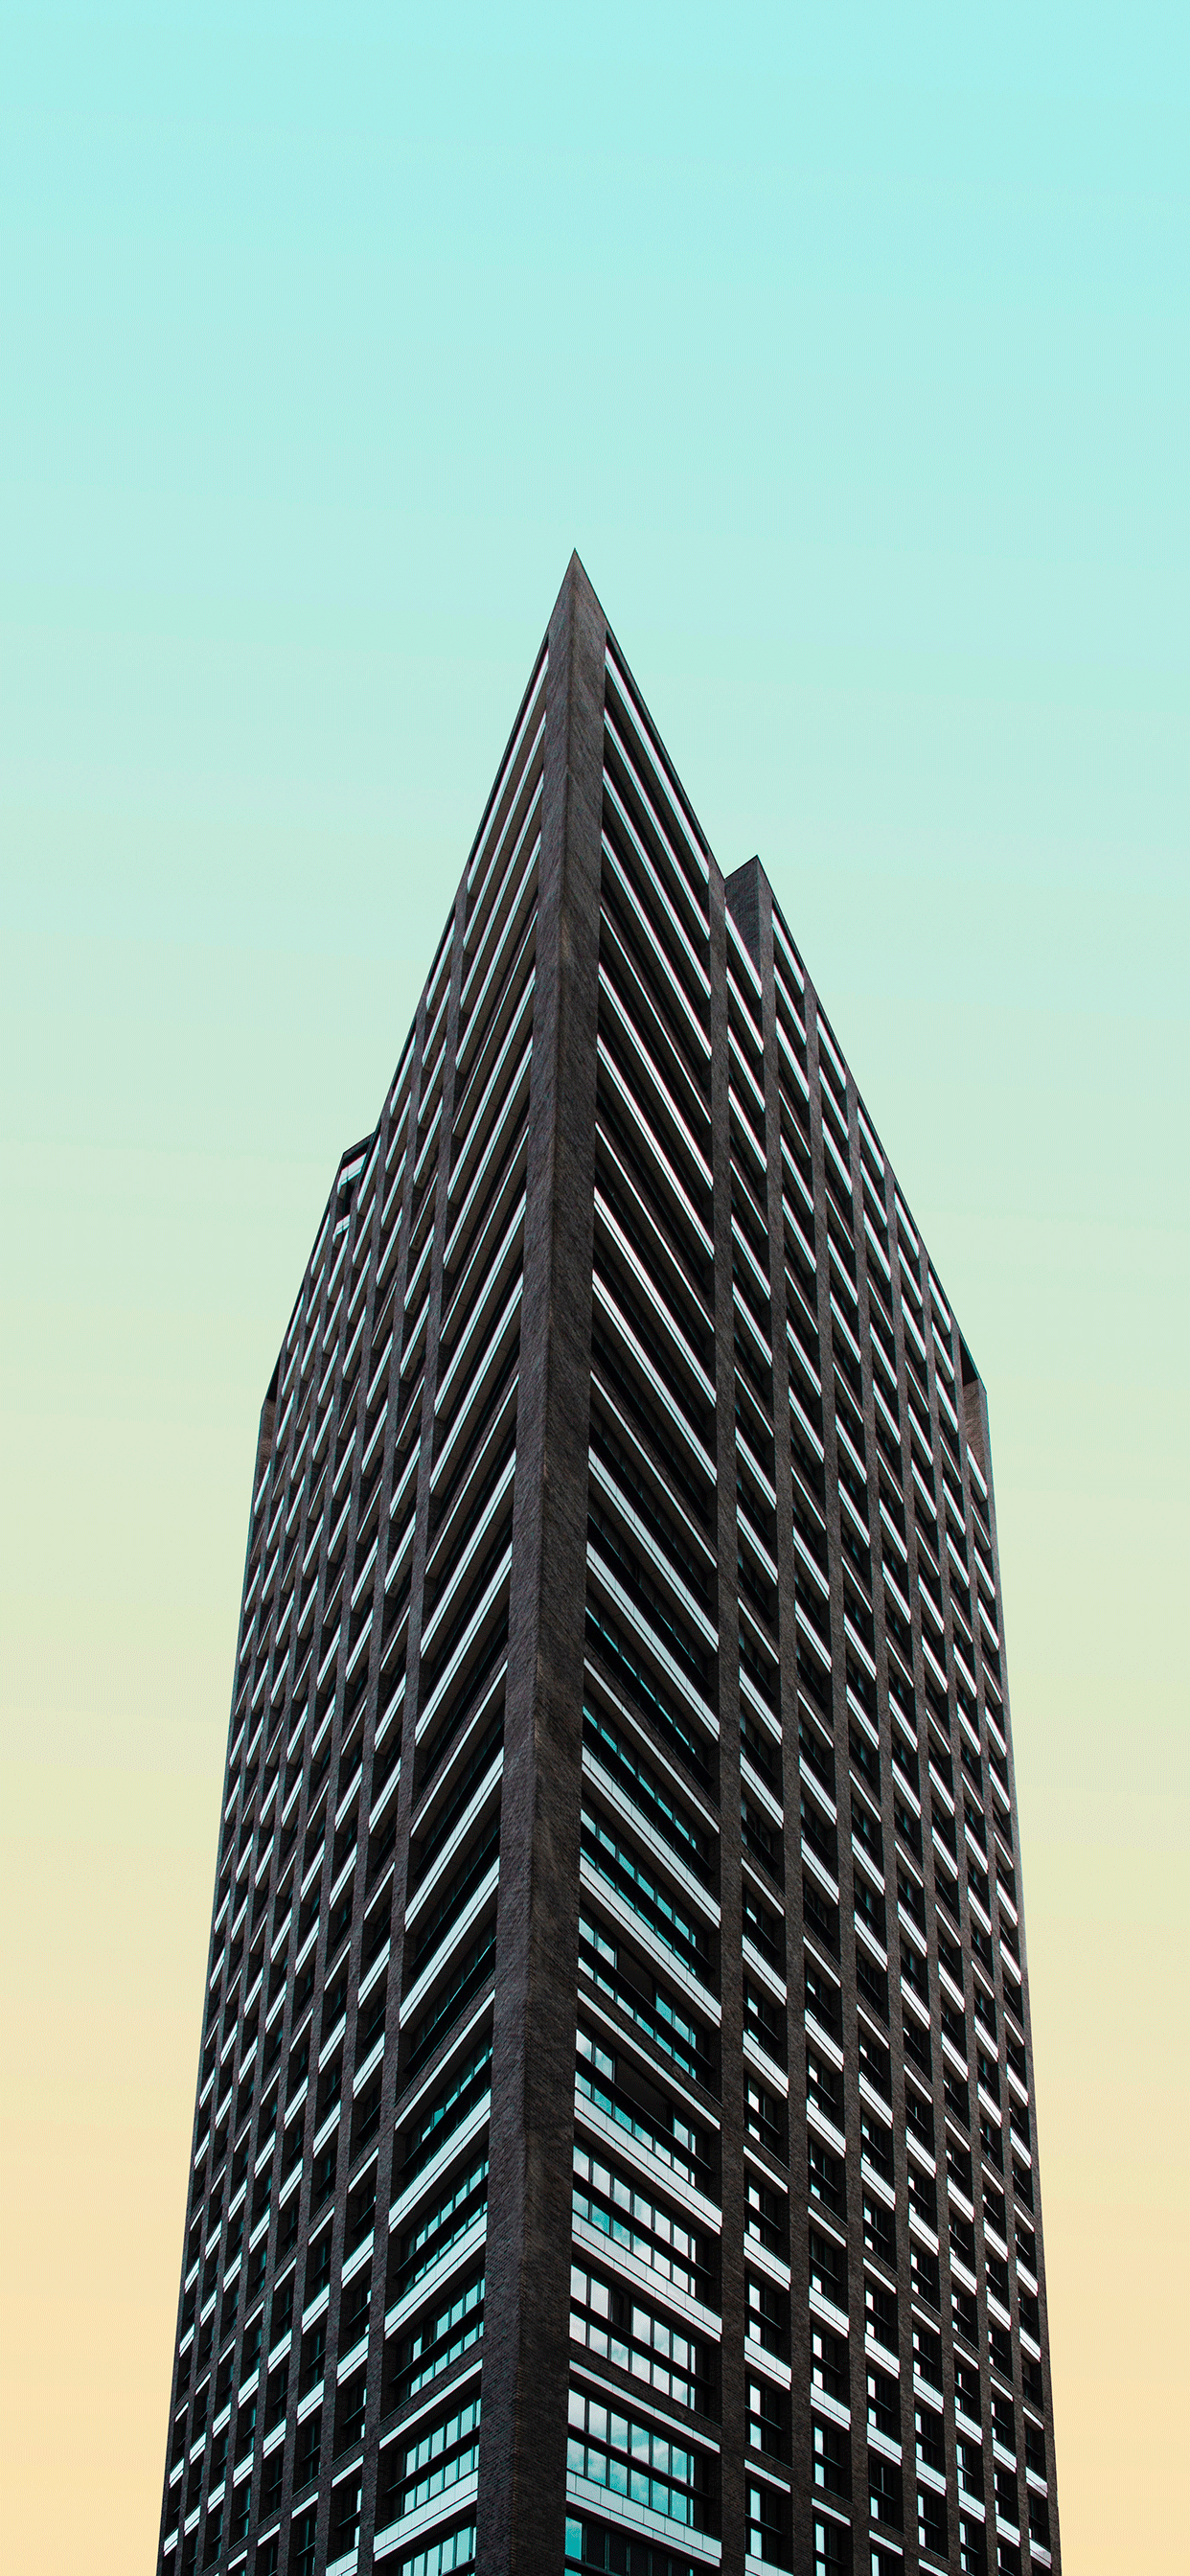 iPhone wallpaper architecture aldgate place Fonds d'écran iPhone du 27/02/2019